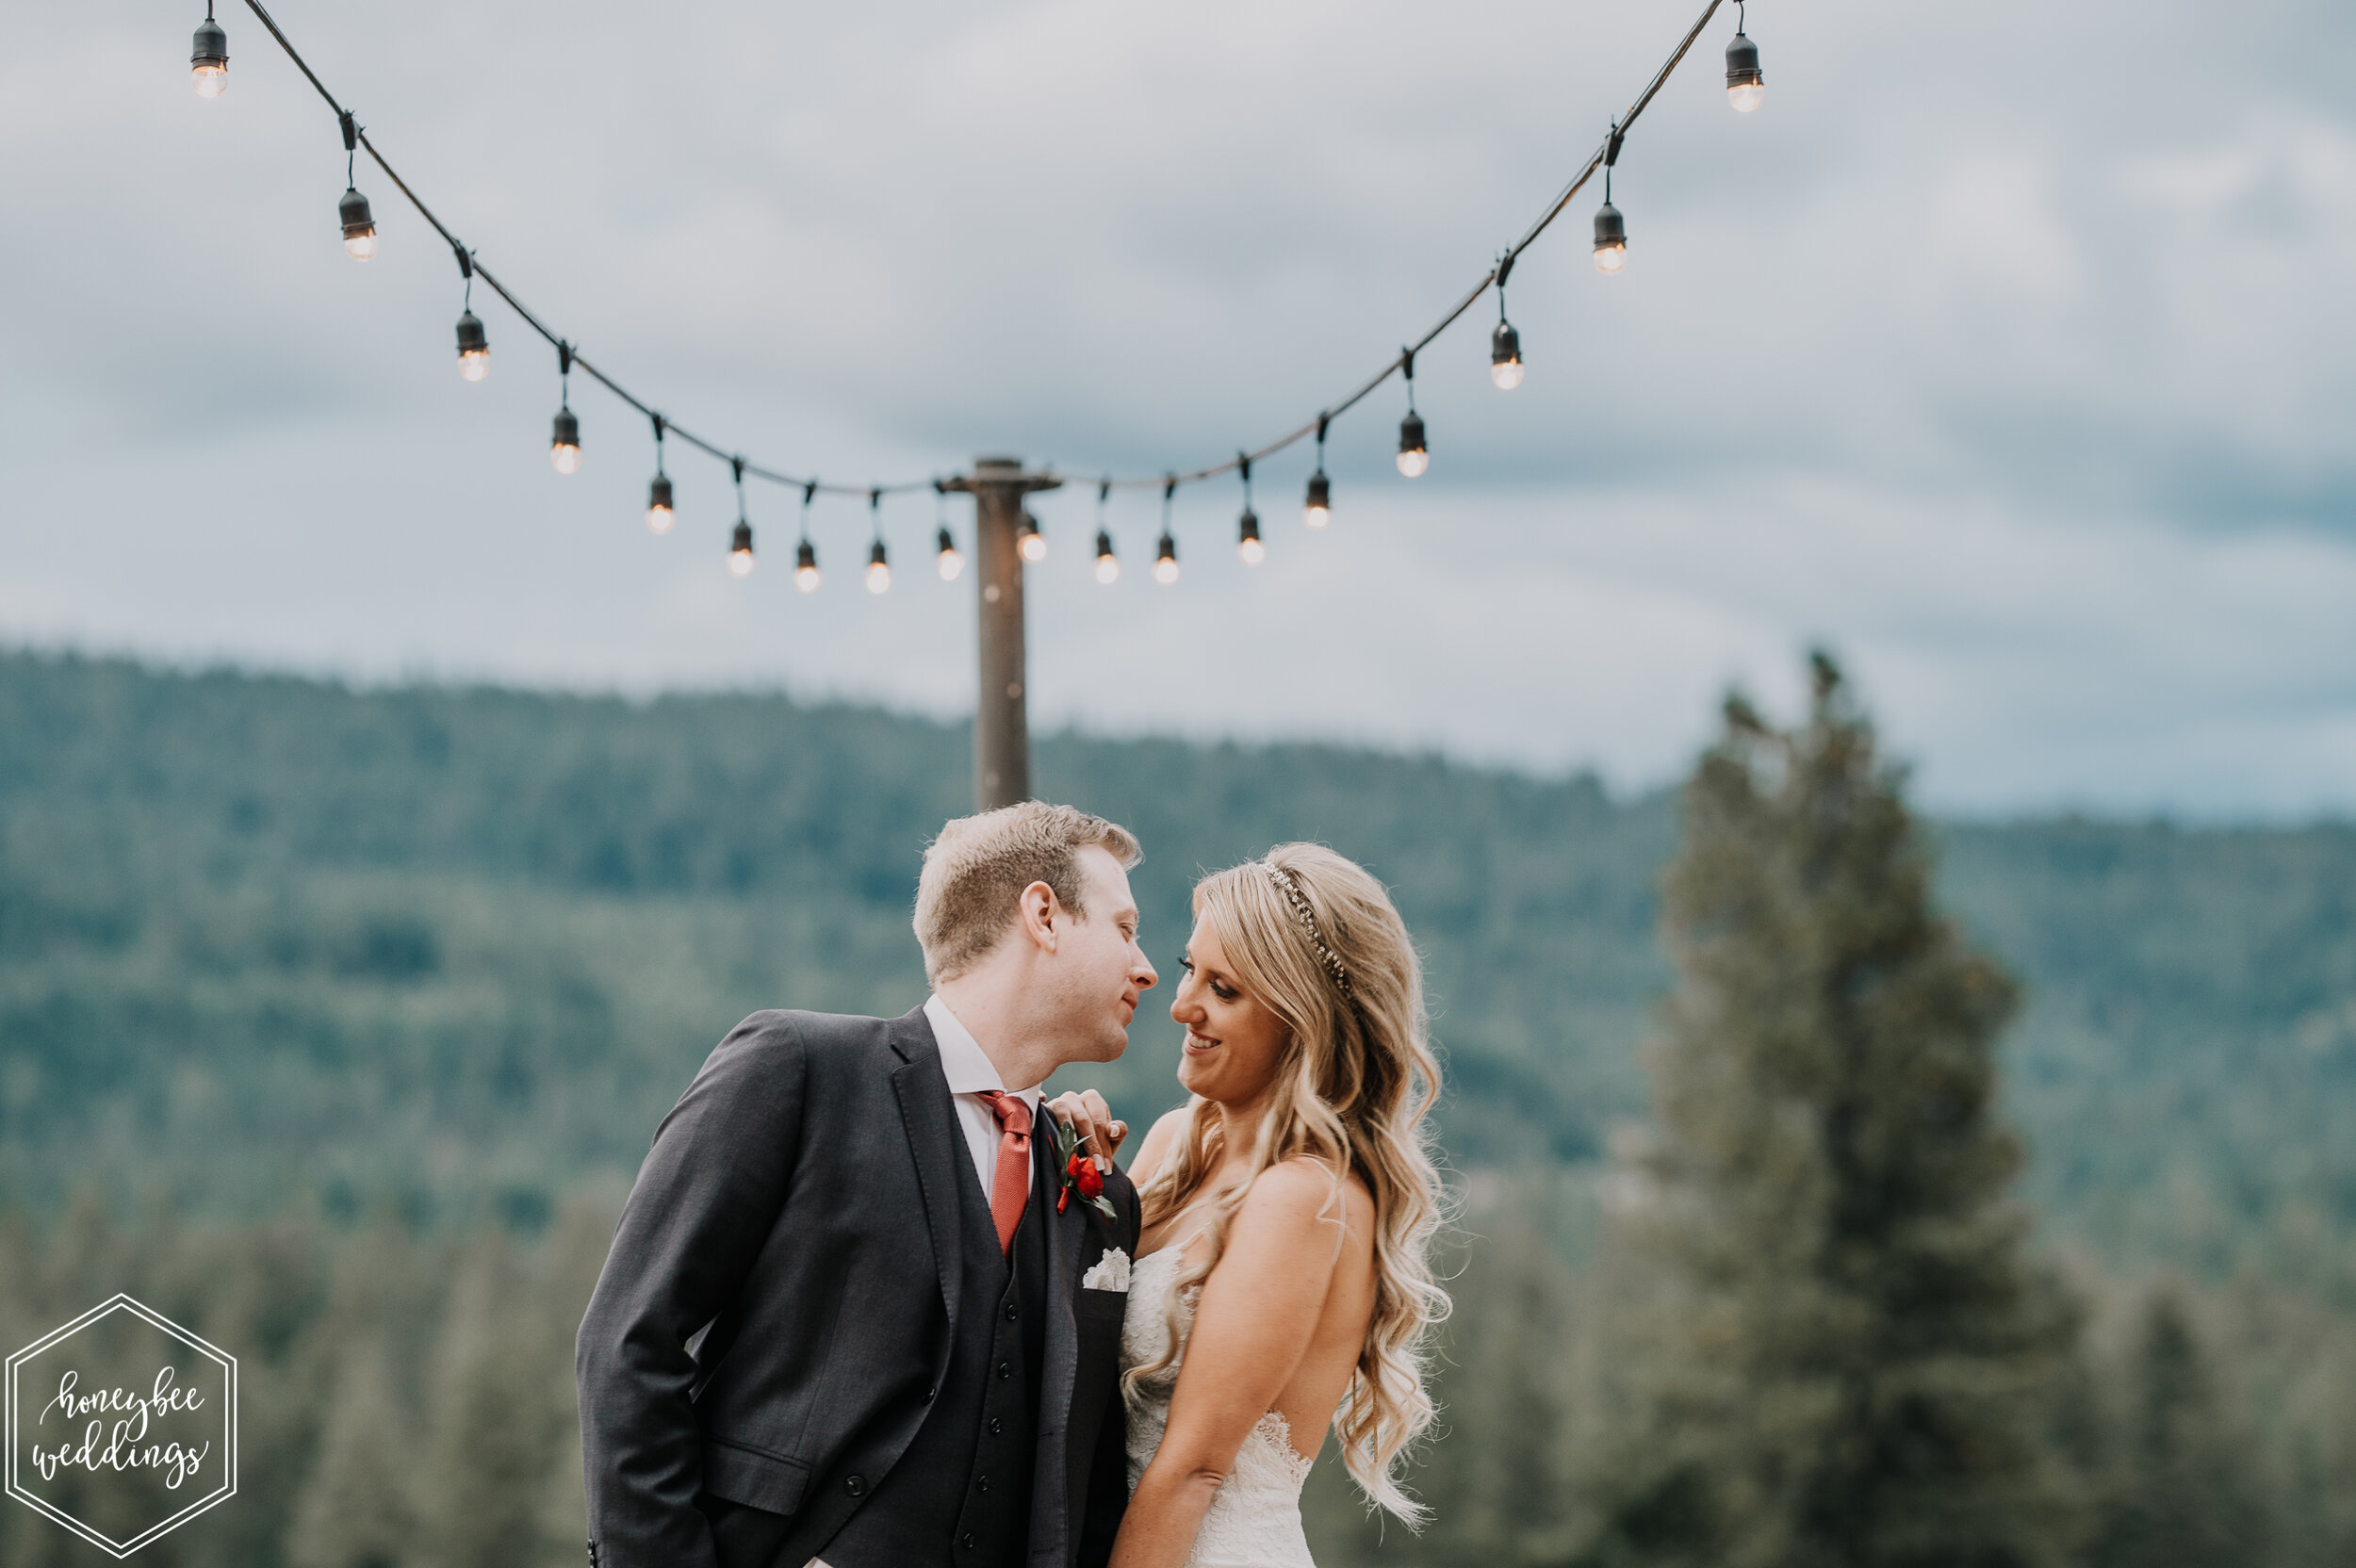 0115Swiftwater Cellars Wedding_Cle Elum Wedding_Montana Wedding Photographer_Kat & Kyle_September 15, 2018-1310.jpg